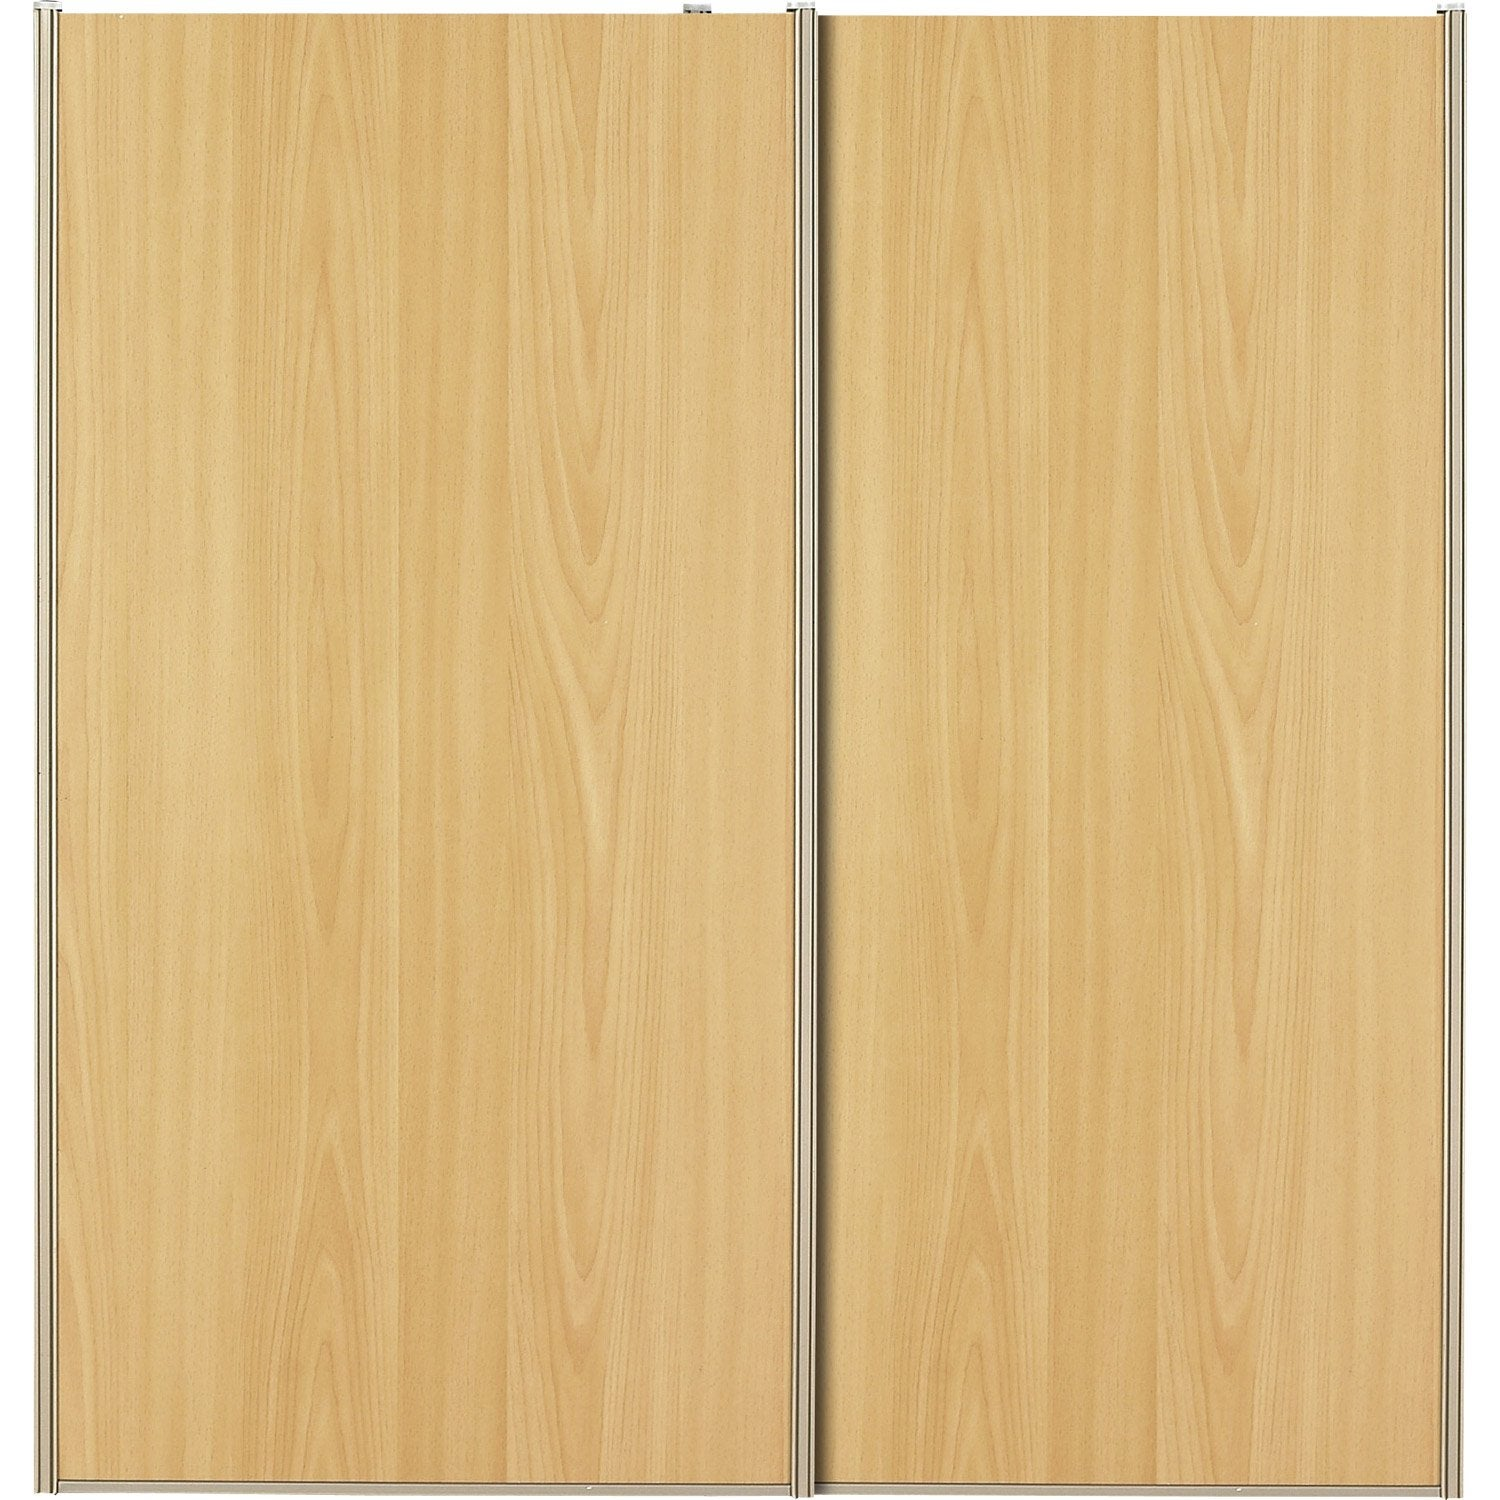 Lot de 2 portes de placard coulissantes naturel 120x120cm leroy merlin - Porte cm ...